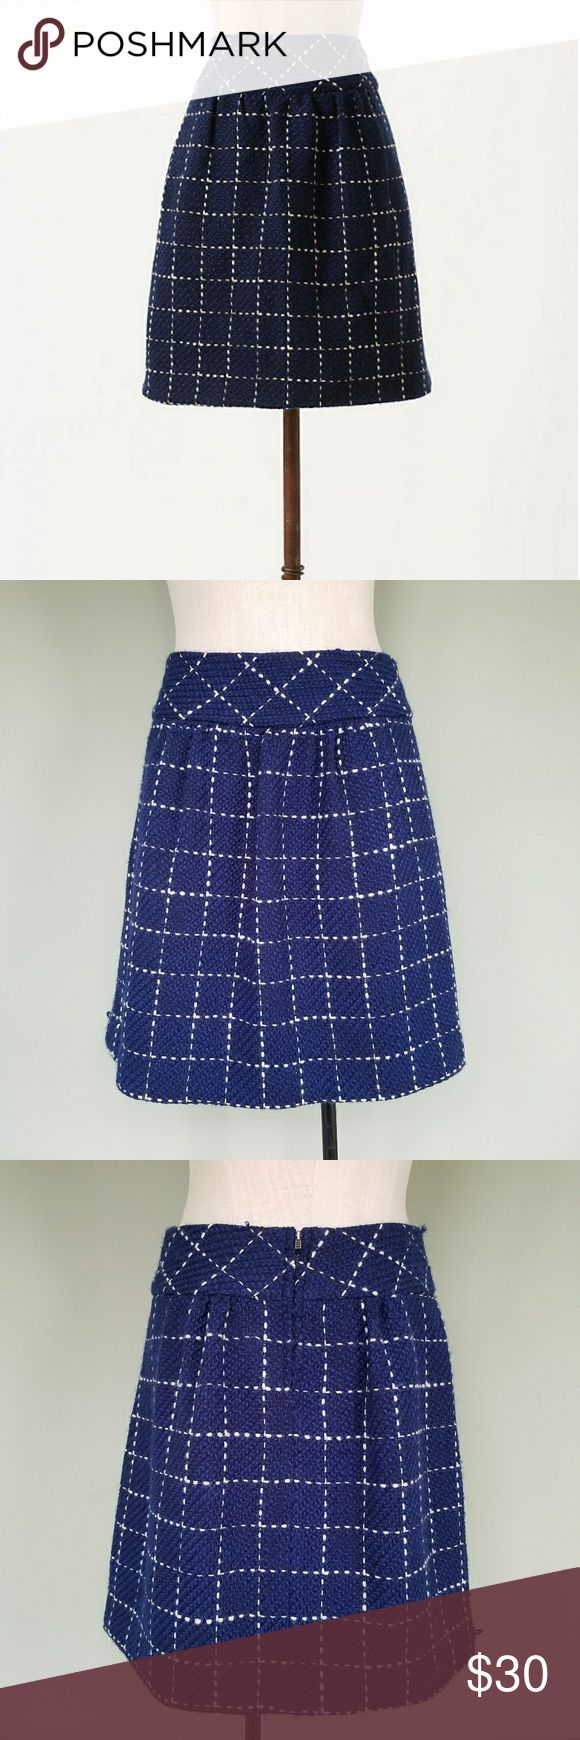 "Anthropologie Maeve Converging Bits Skirt Wool Maeve by Anthropologie. Size 8. Converging Bits skirt. Navy blue / white plaid knit. 70% Wool, 30% Acrylic  Front pockets. Zipper back.  20"" Length. Great condition. There are a couple loose thread pulls. Anthropologie Skirts"